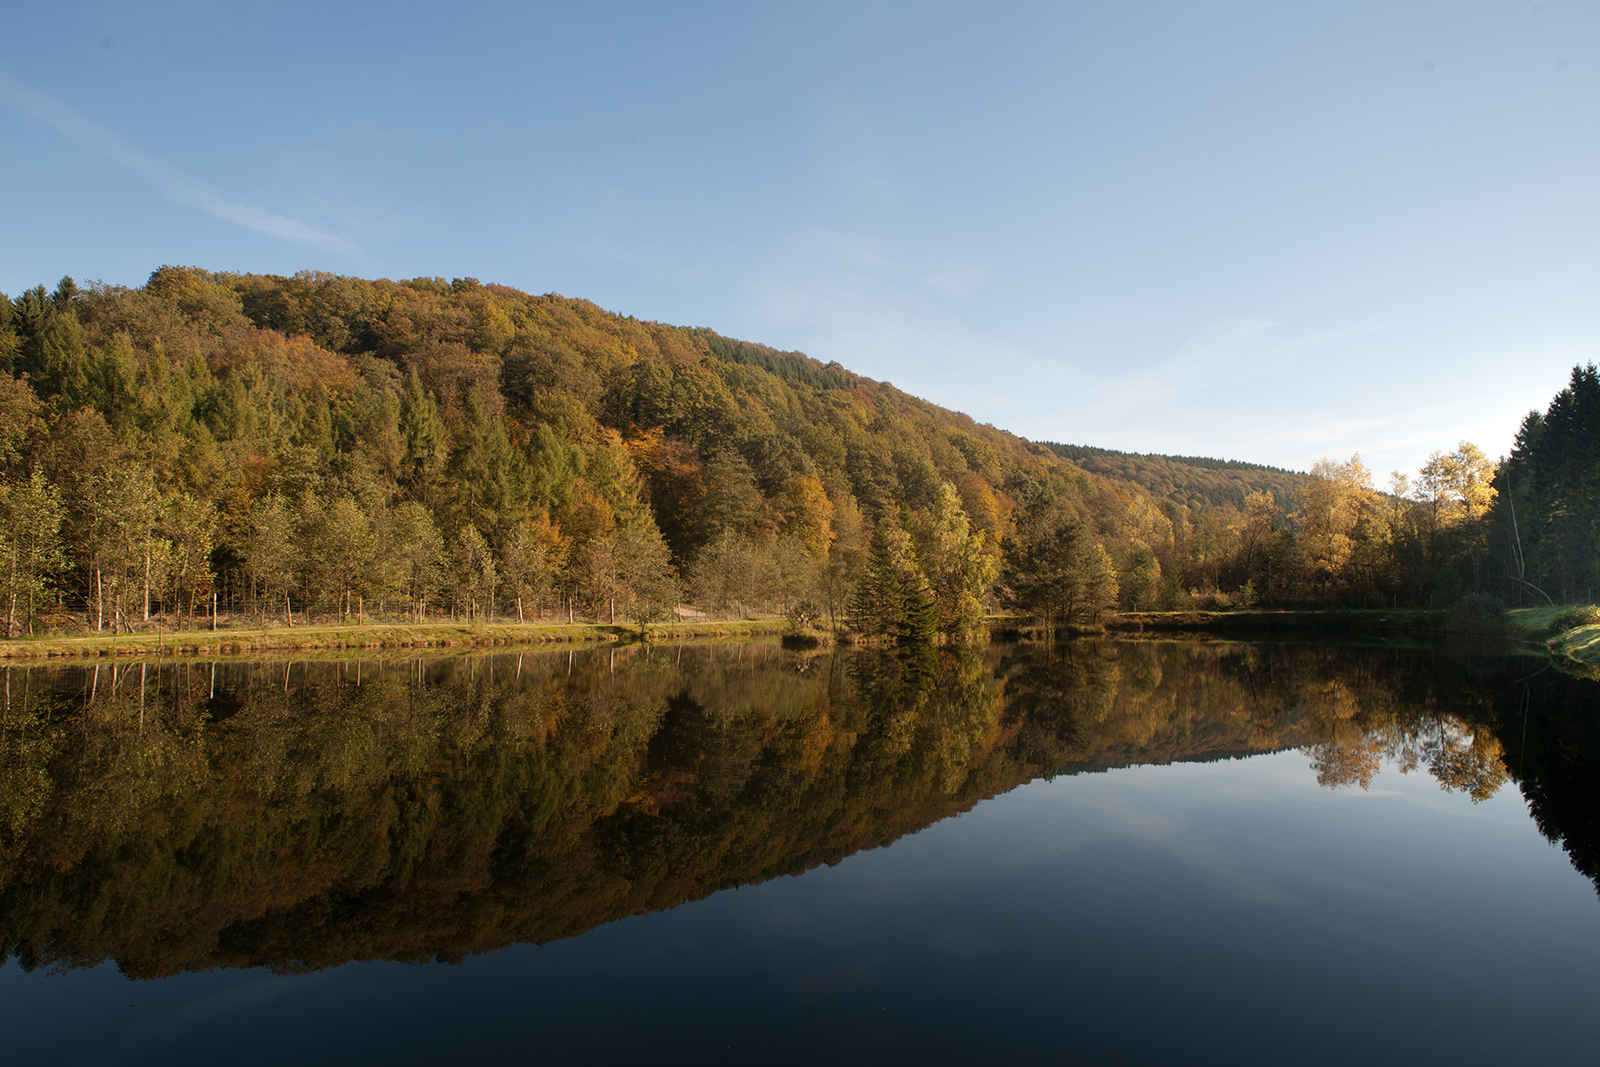 Pond at castle Ehreshoven near Cologne